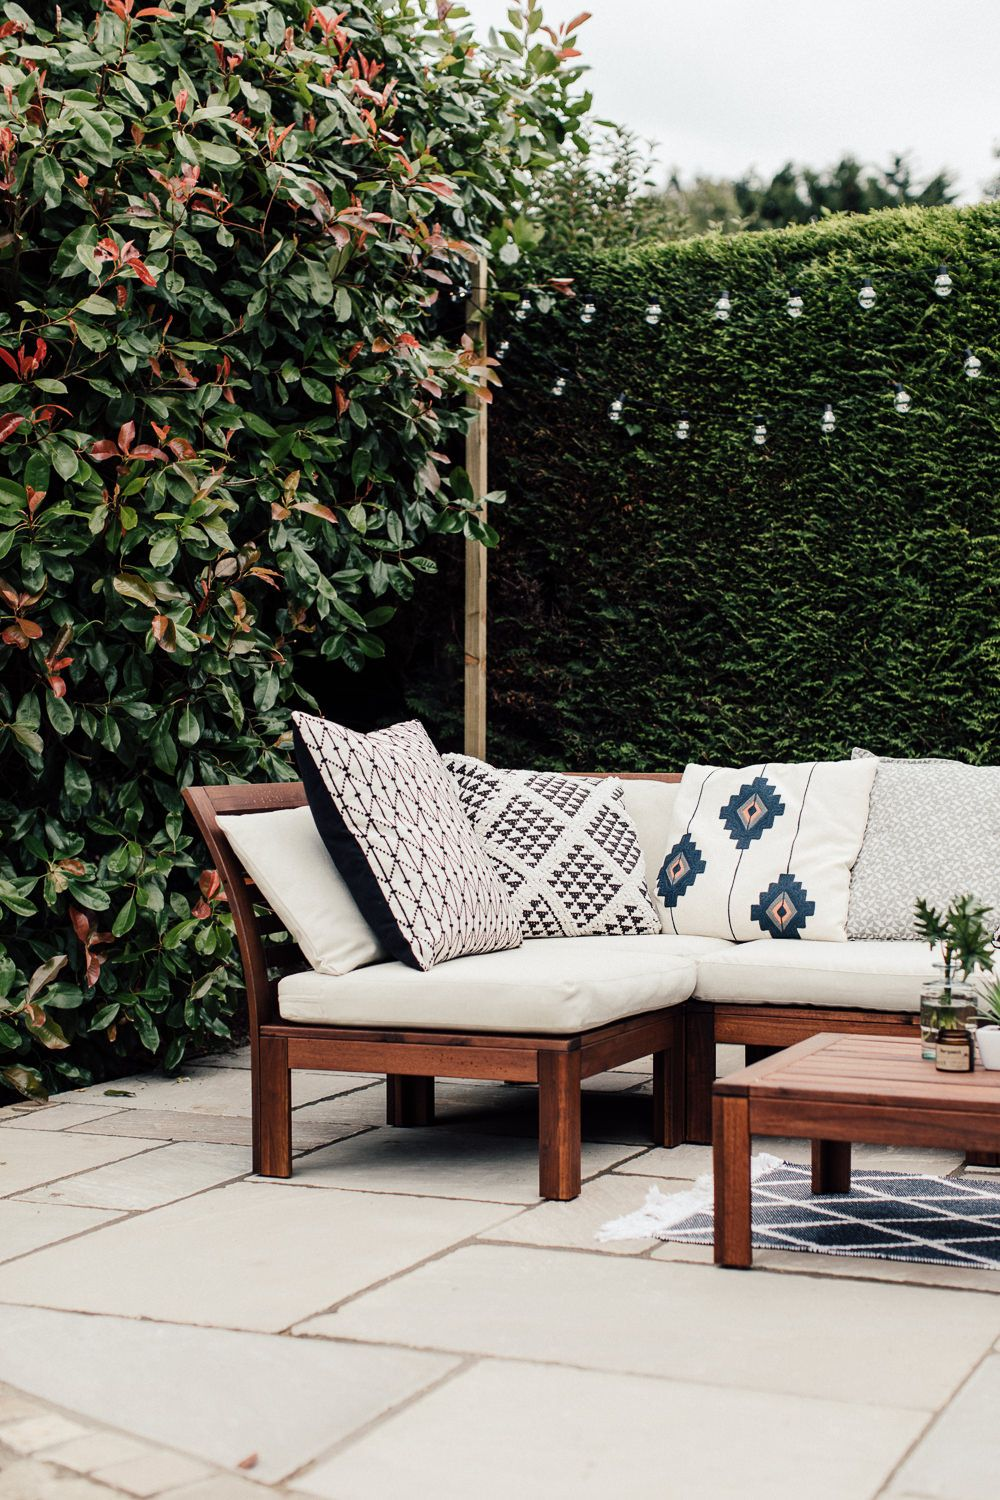 Ikea Küchen Katalog 2016 Pdf A Patio For Lounging - Rock My Style | Uk Daily Lifestyle Blog | Ikea Outdoor Furniture, Ikea Outdoor, Apartment Patio Decor